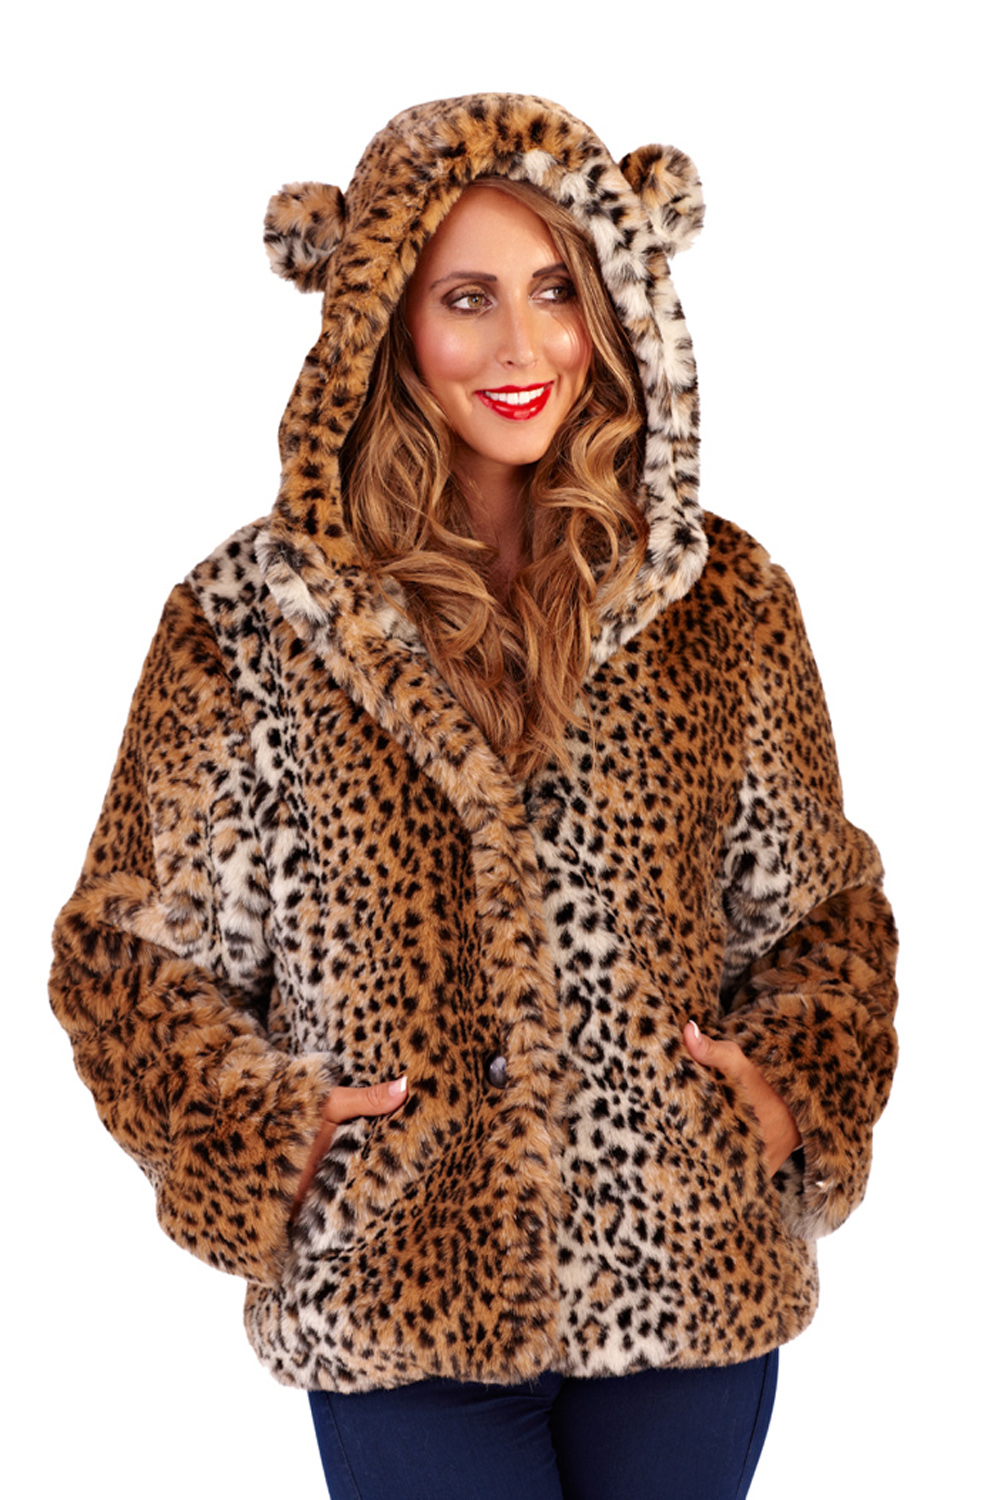 Animal print clothing for women